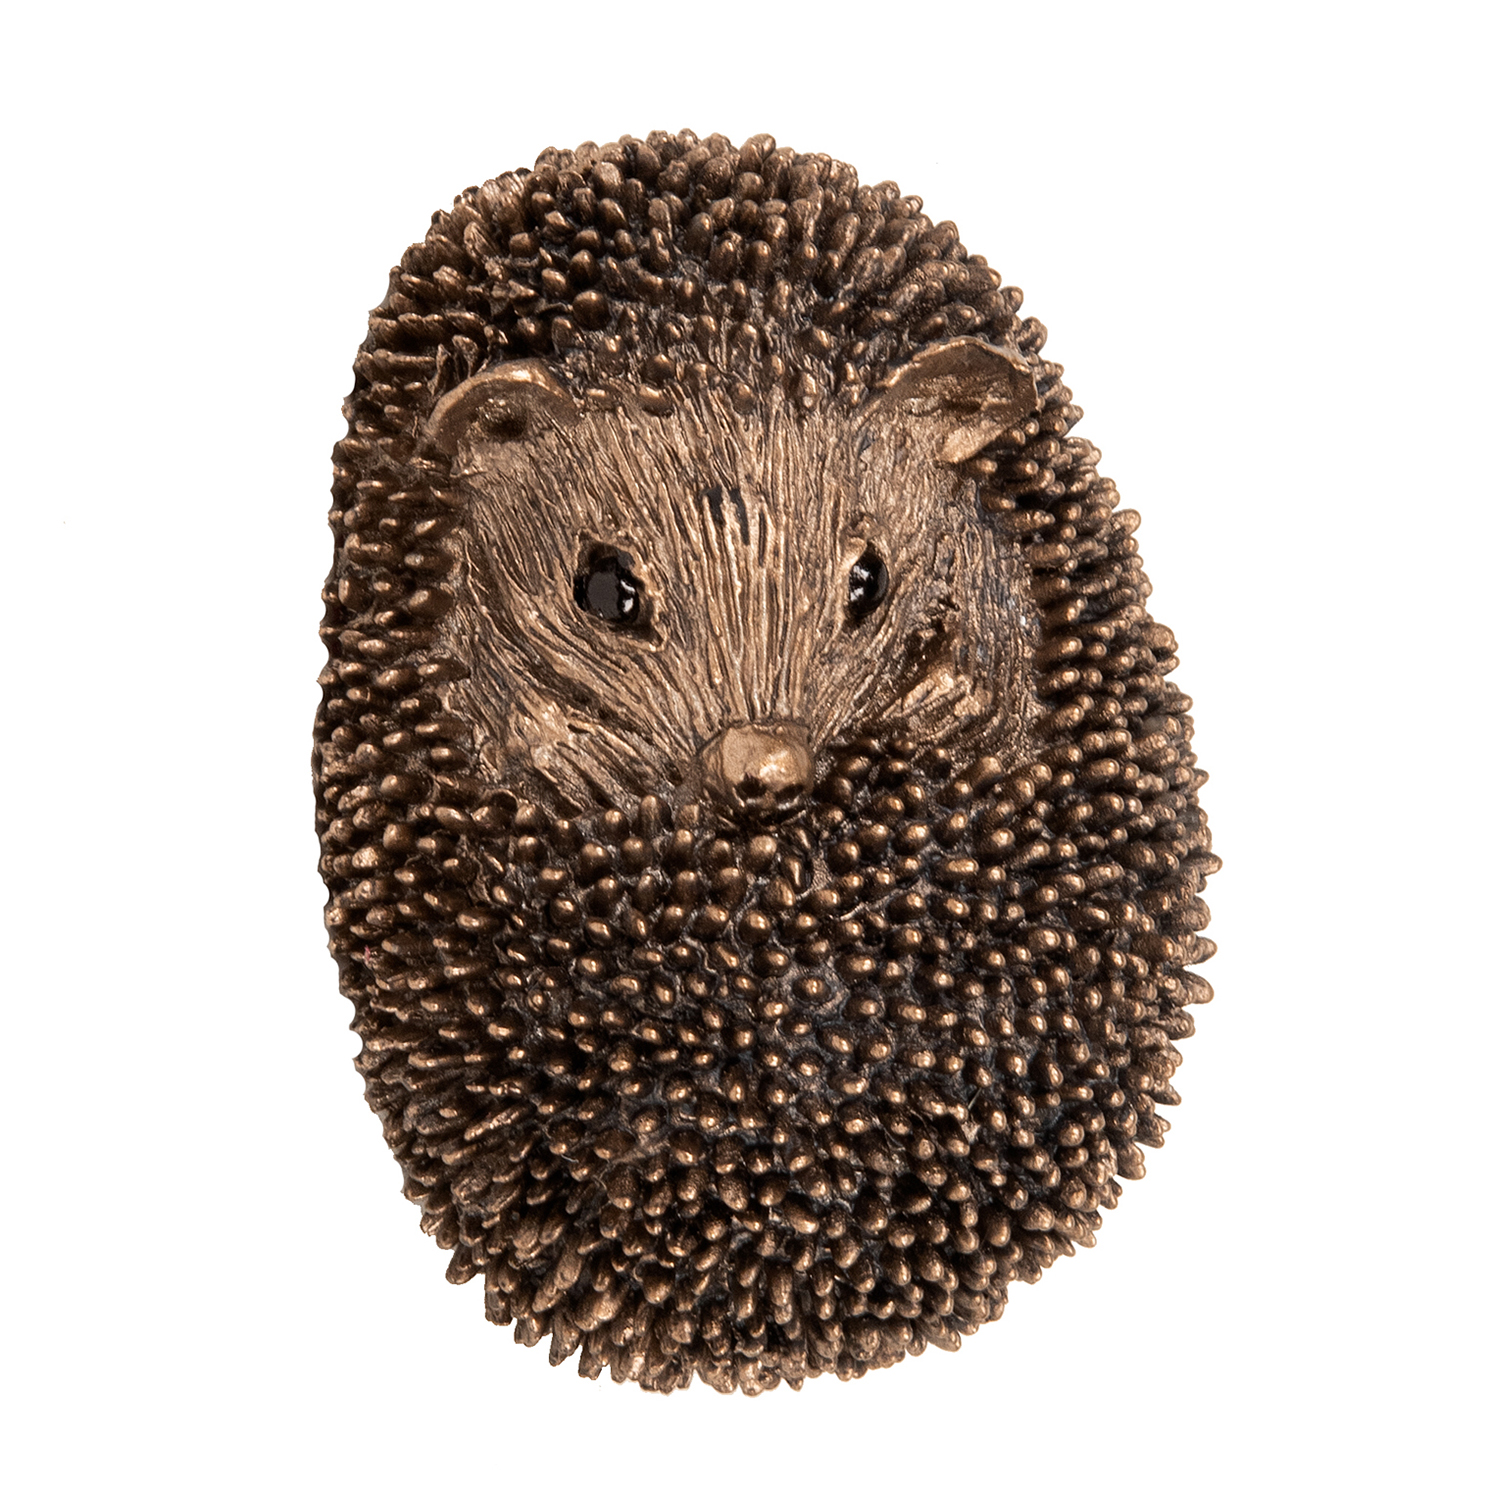 Frith Sculpture – Zippo – Baby Hedgehog Asleep in Bronze Resin by Thomas Meadows